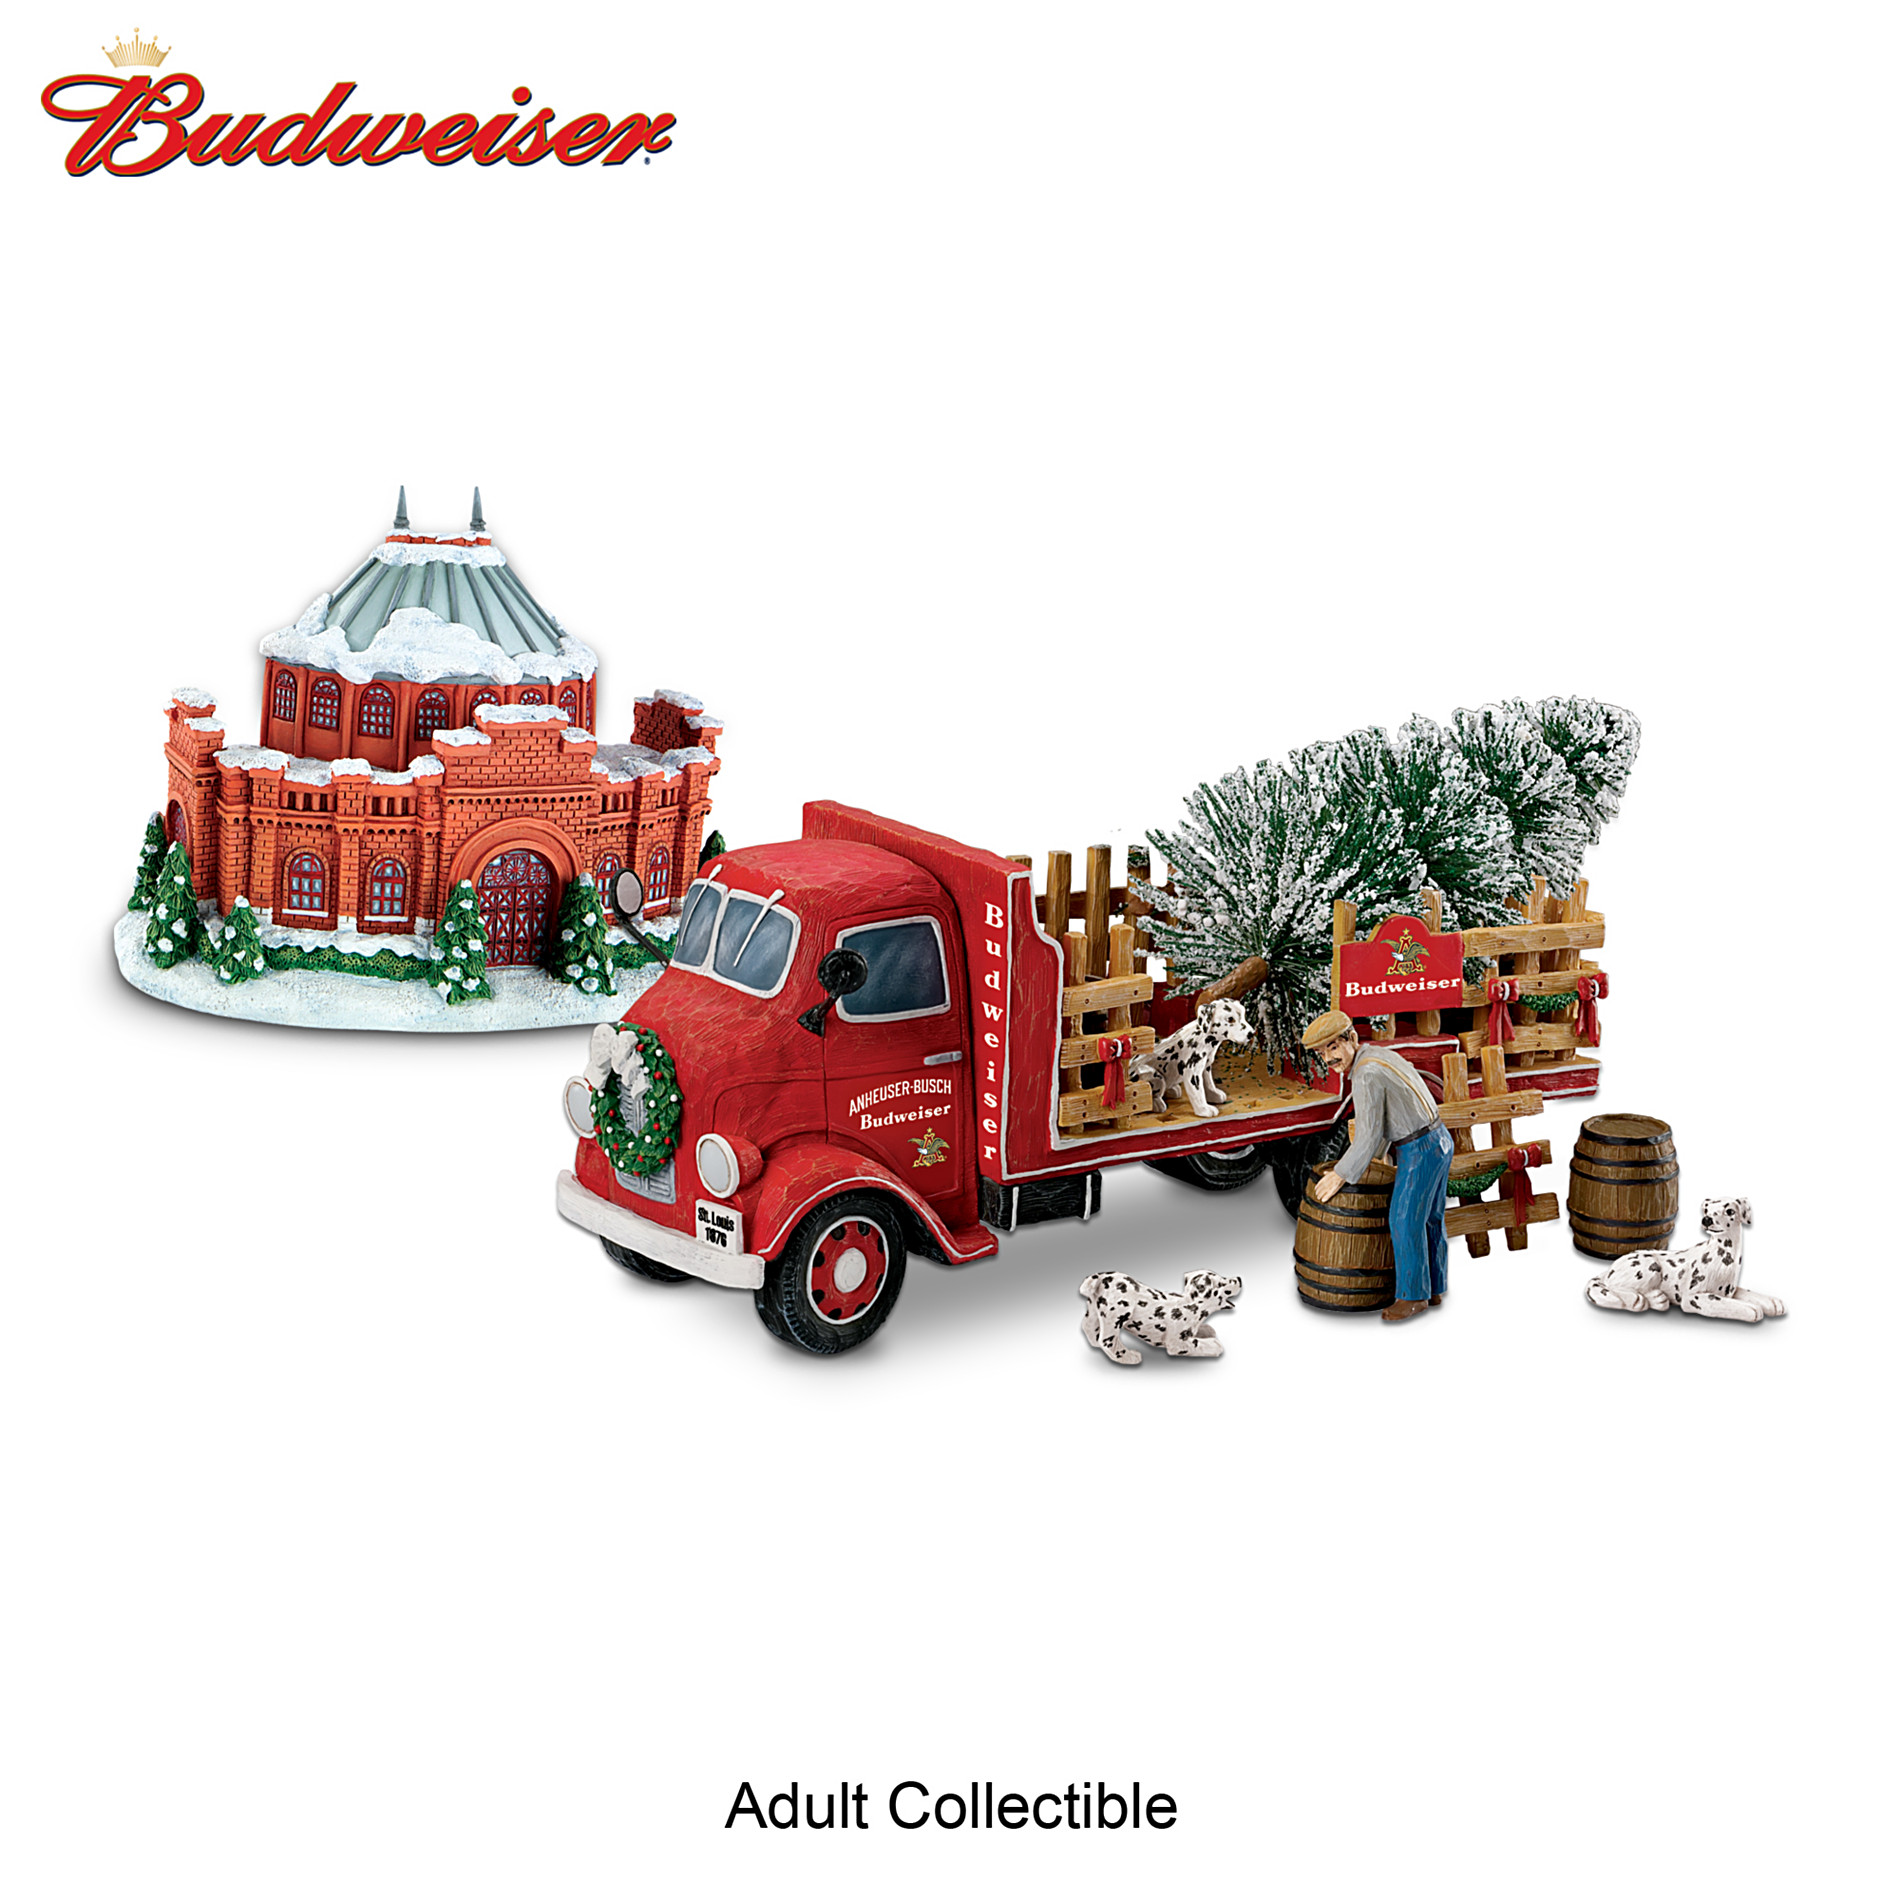 Hawthorne Village Budweiser Happy Holidays Delivery Truck 2012 Sculpture at Sears.com